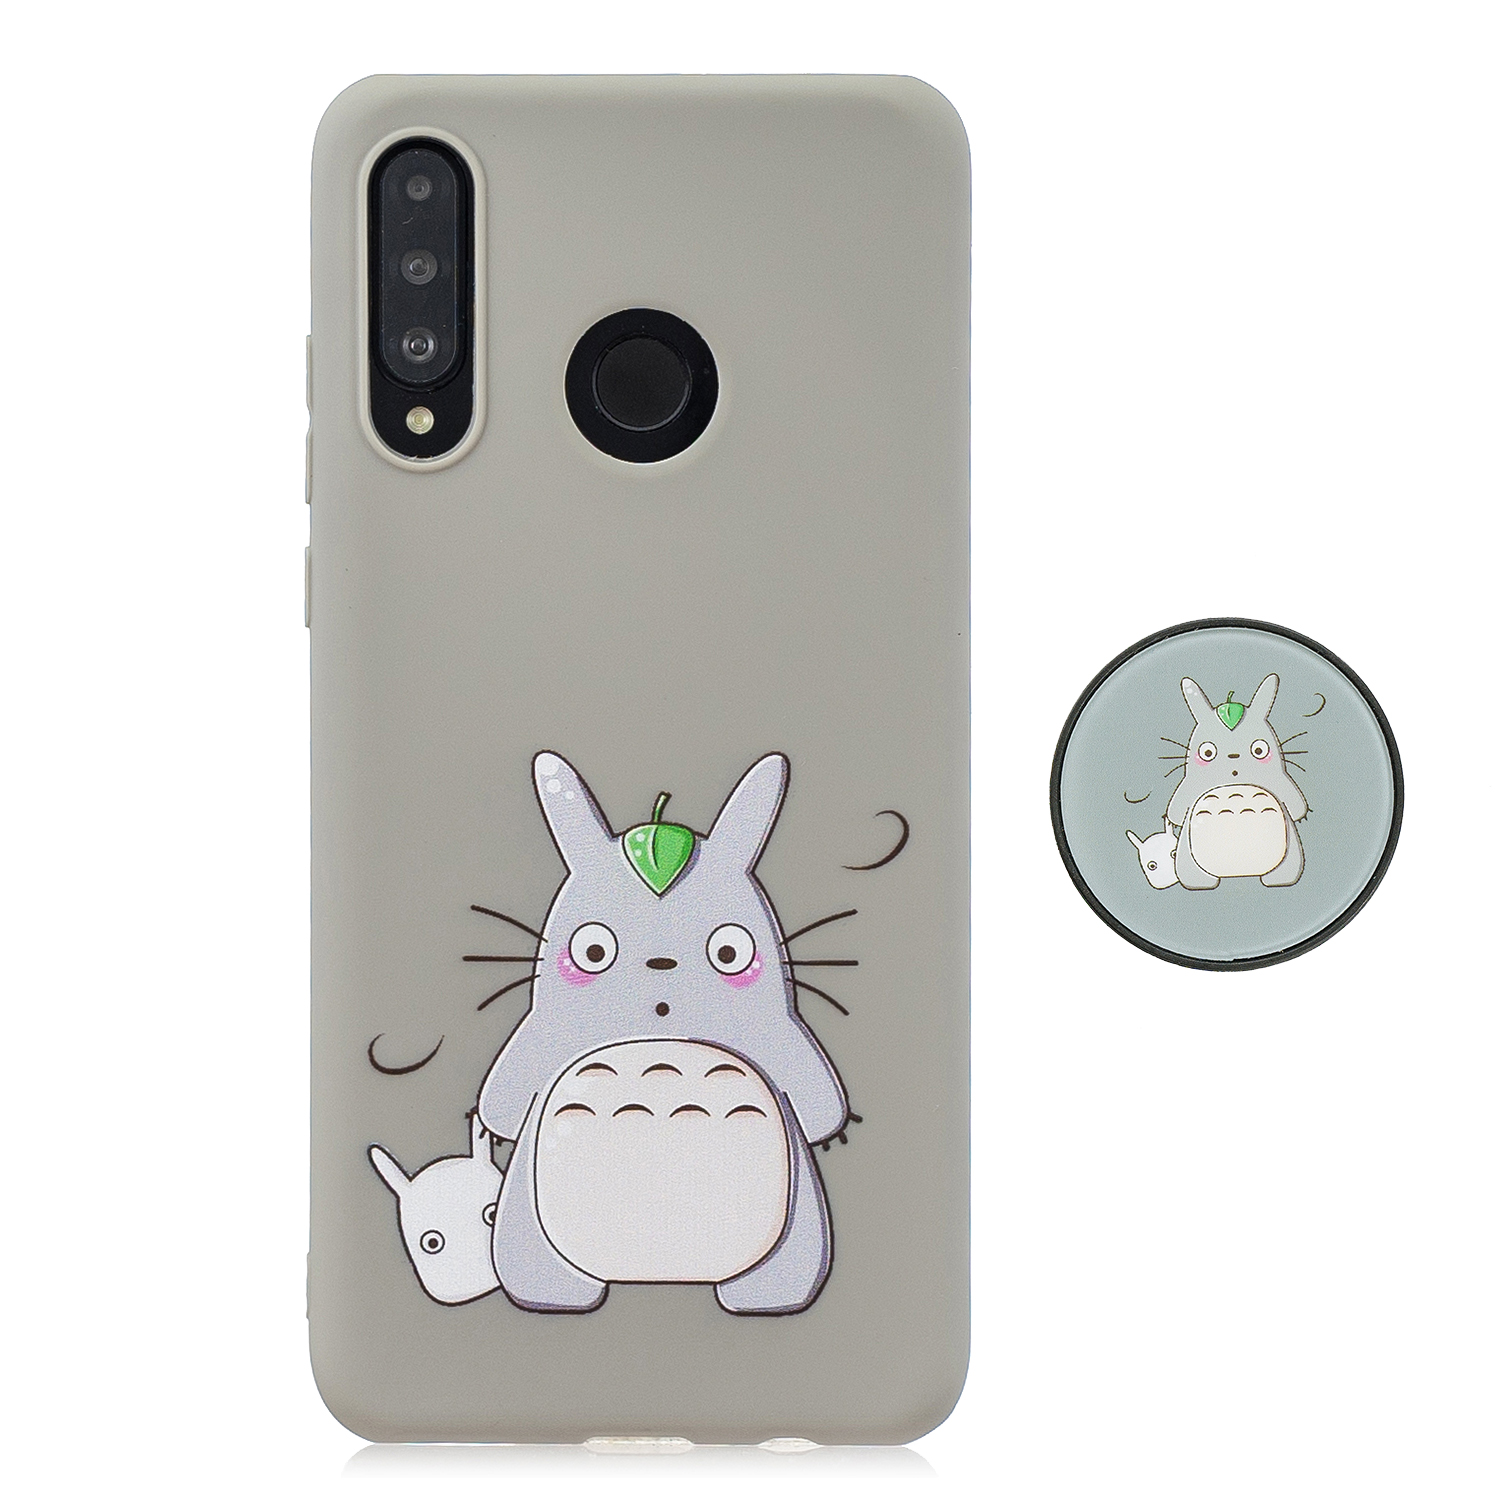 For HUAWEI P30 lite Cute Cartoon Phone Case Ultra Thin Lightweight Soft TPU Phone Case Pure Color Phone Cover with Matching Pattern Adjustable Bracket 4